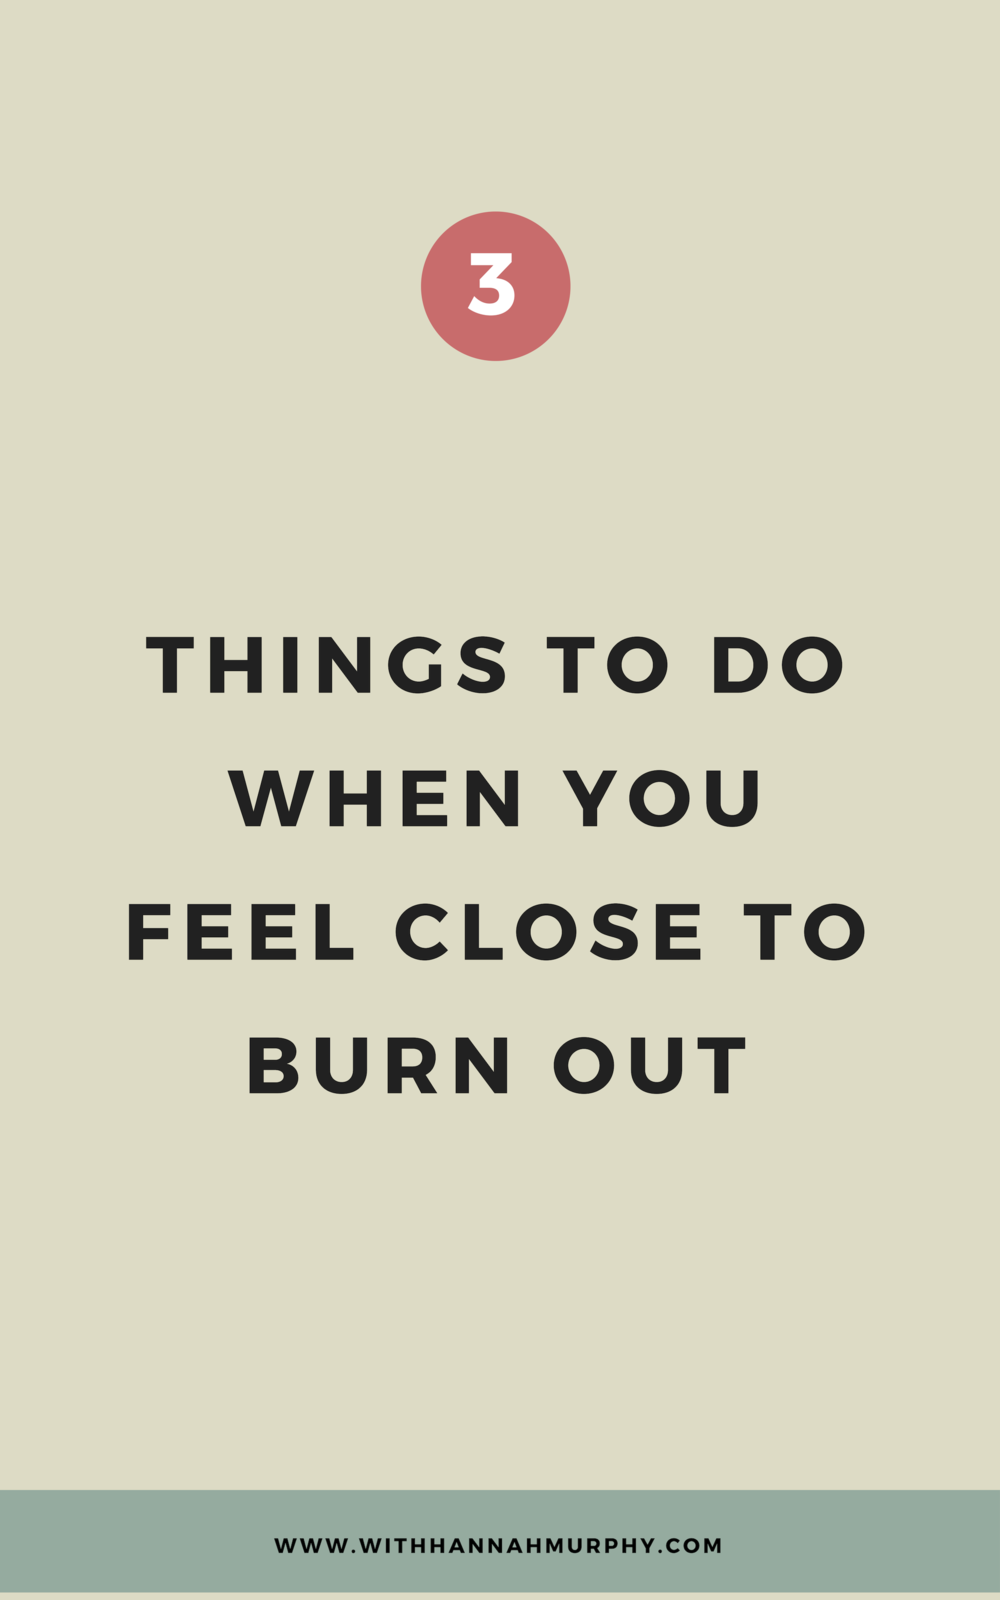 3 things to do when you're close to burnout | With Hannah Murphy #businesstips #creativebusinessresources